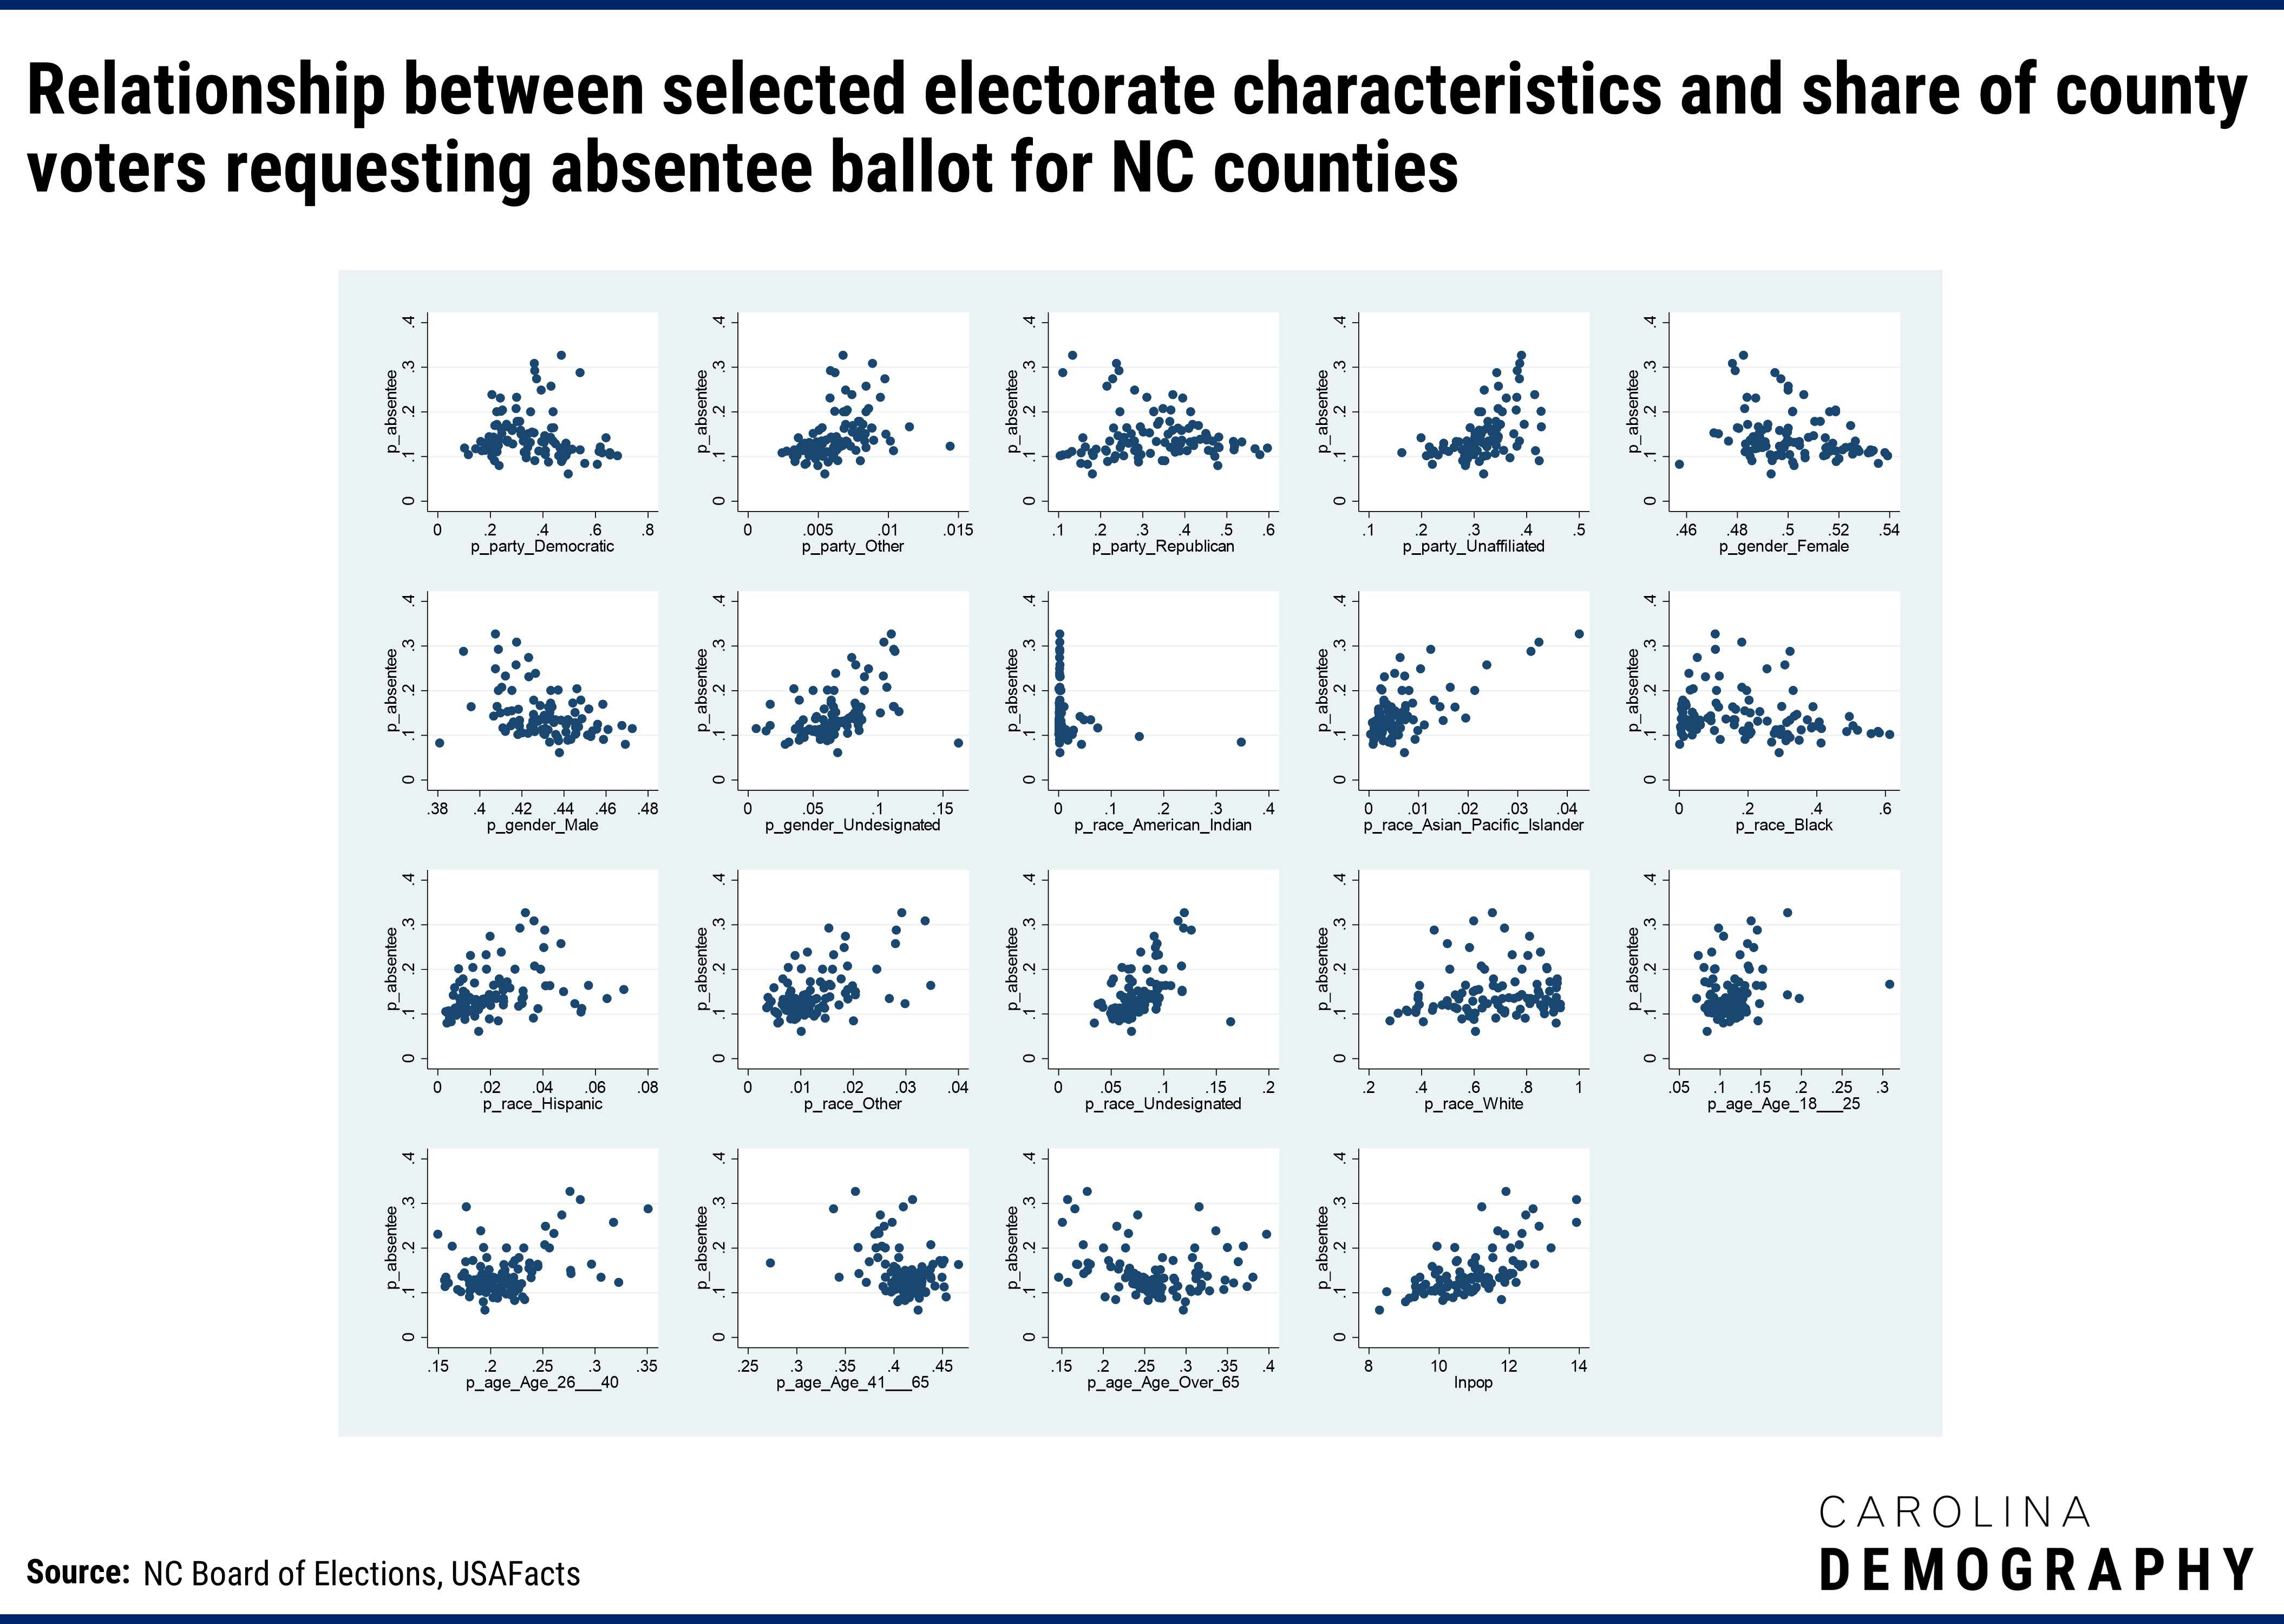 Multiple scatter plots showing the Relationship between selected electorate characteristics and share of county voters requesting absentee ballot for NC counties